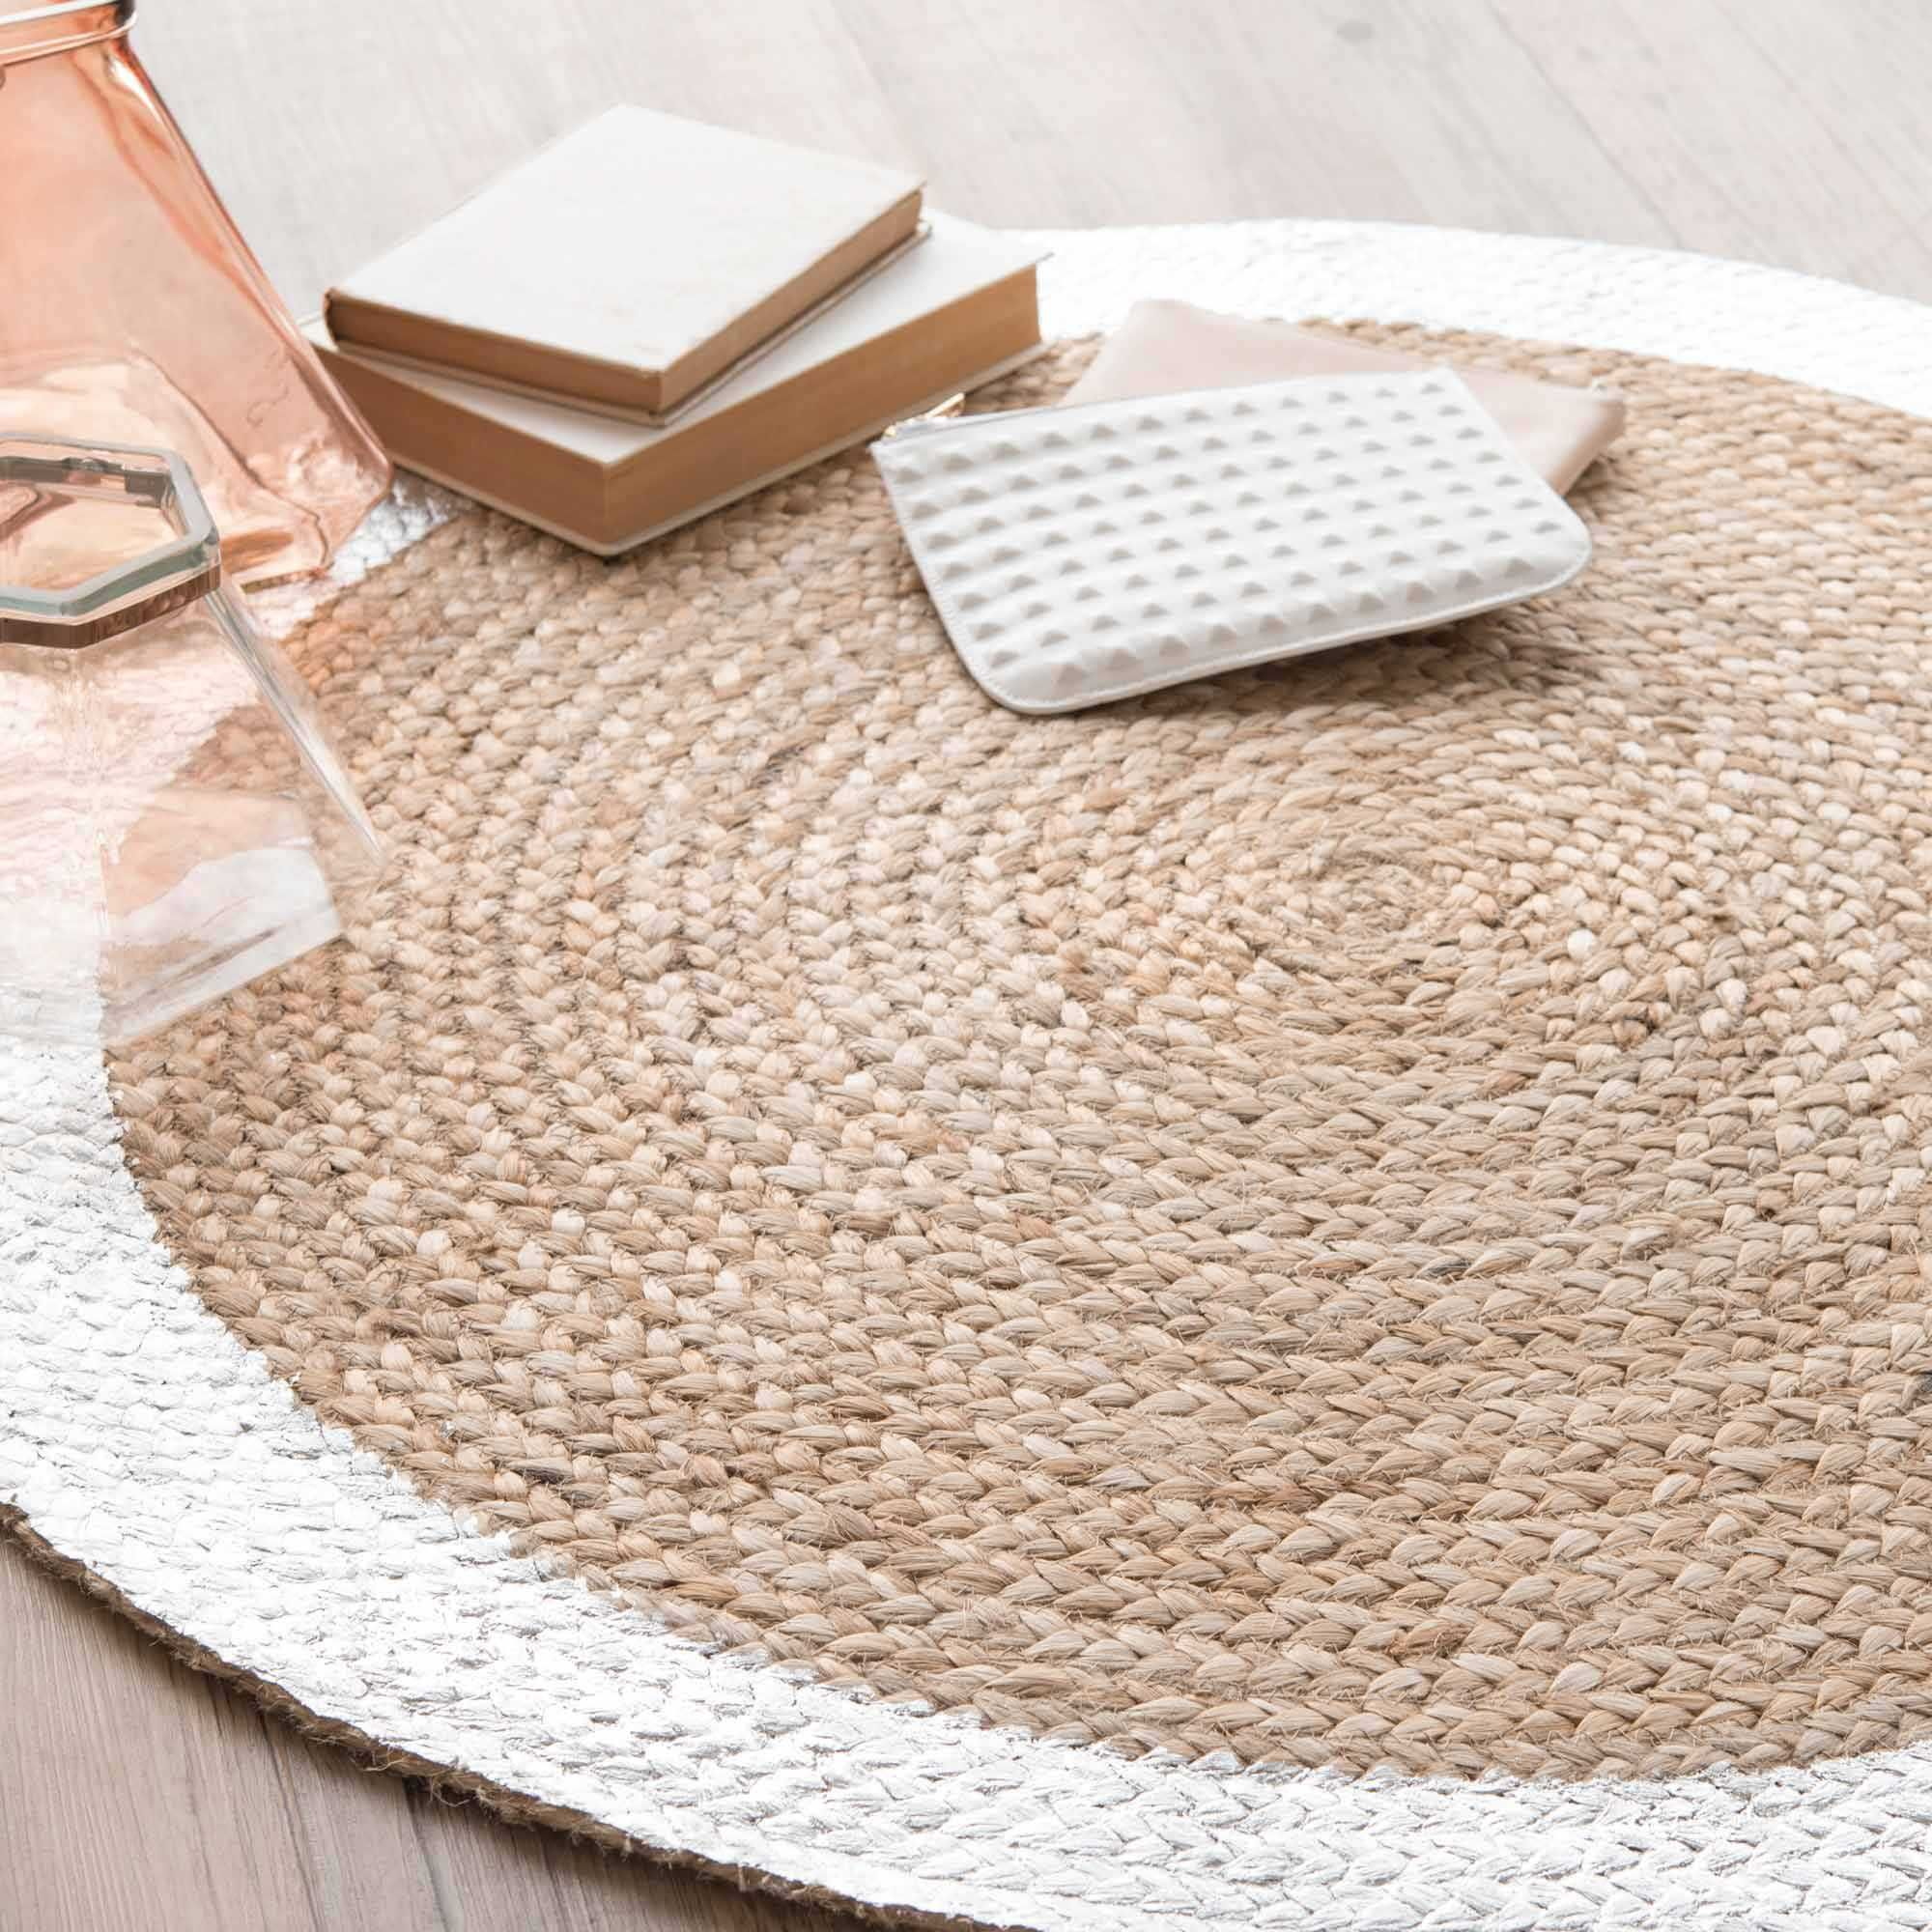 tapis rond en jute naturel argent e d 90 cm vertige maisons du monde home pinterest. Black Bedroom Furniture Sets. Home Design Ideas